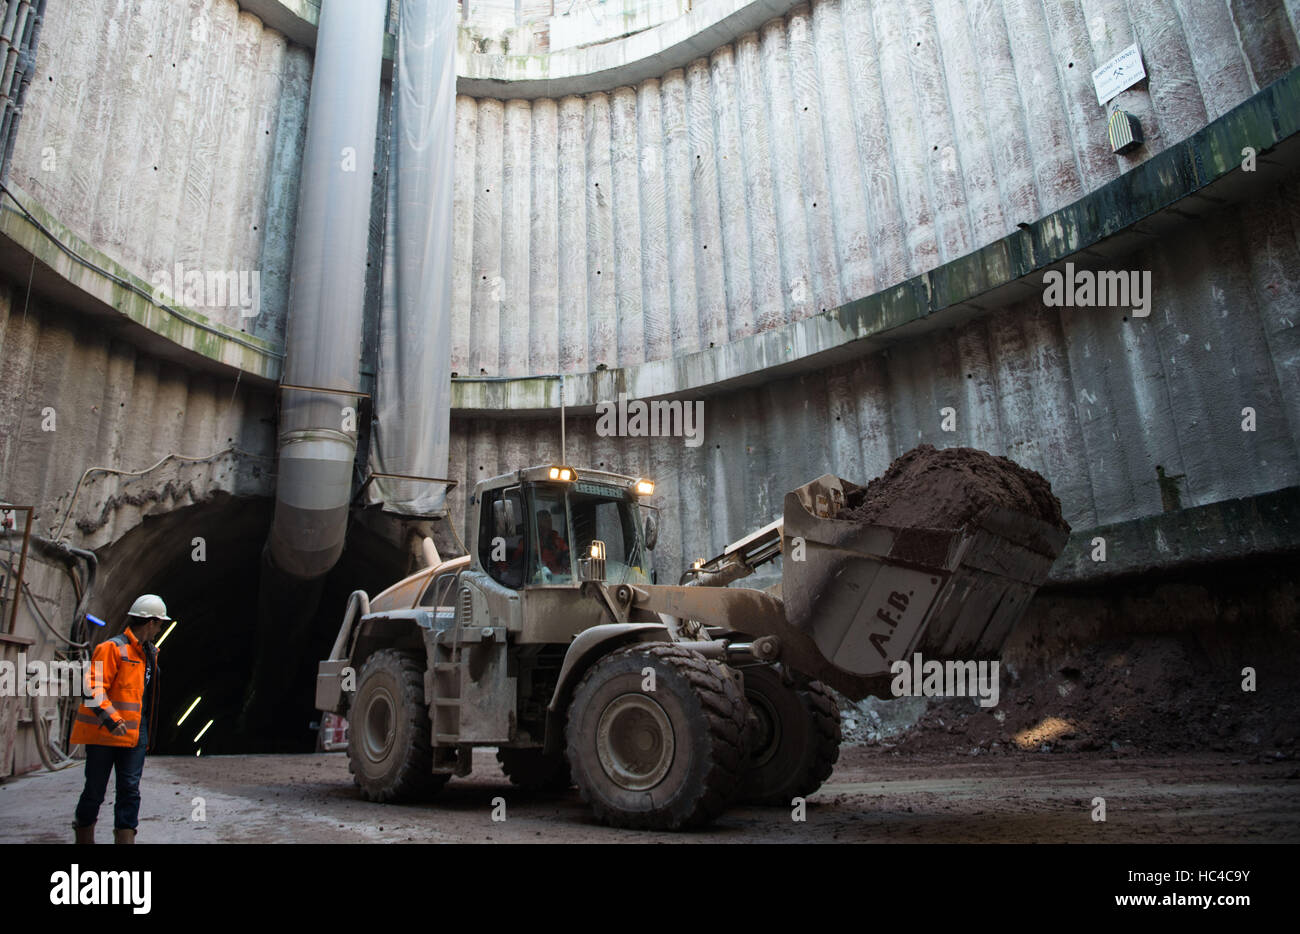 Stuttgart, Germany. 08th Dec, 2016. A construction worker in front of a digger during a tour of the building site - Stock Image